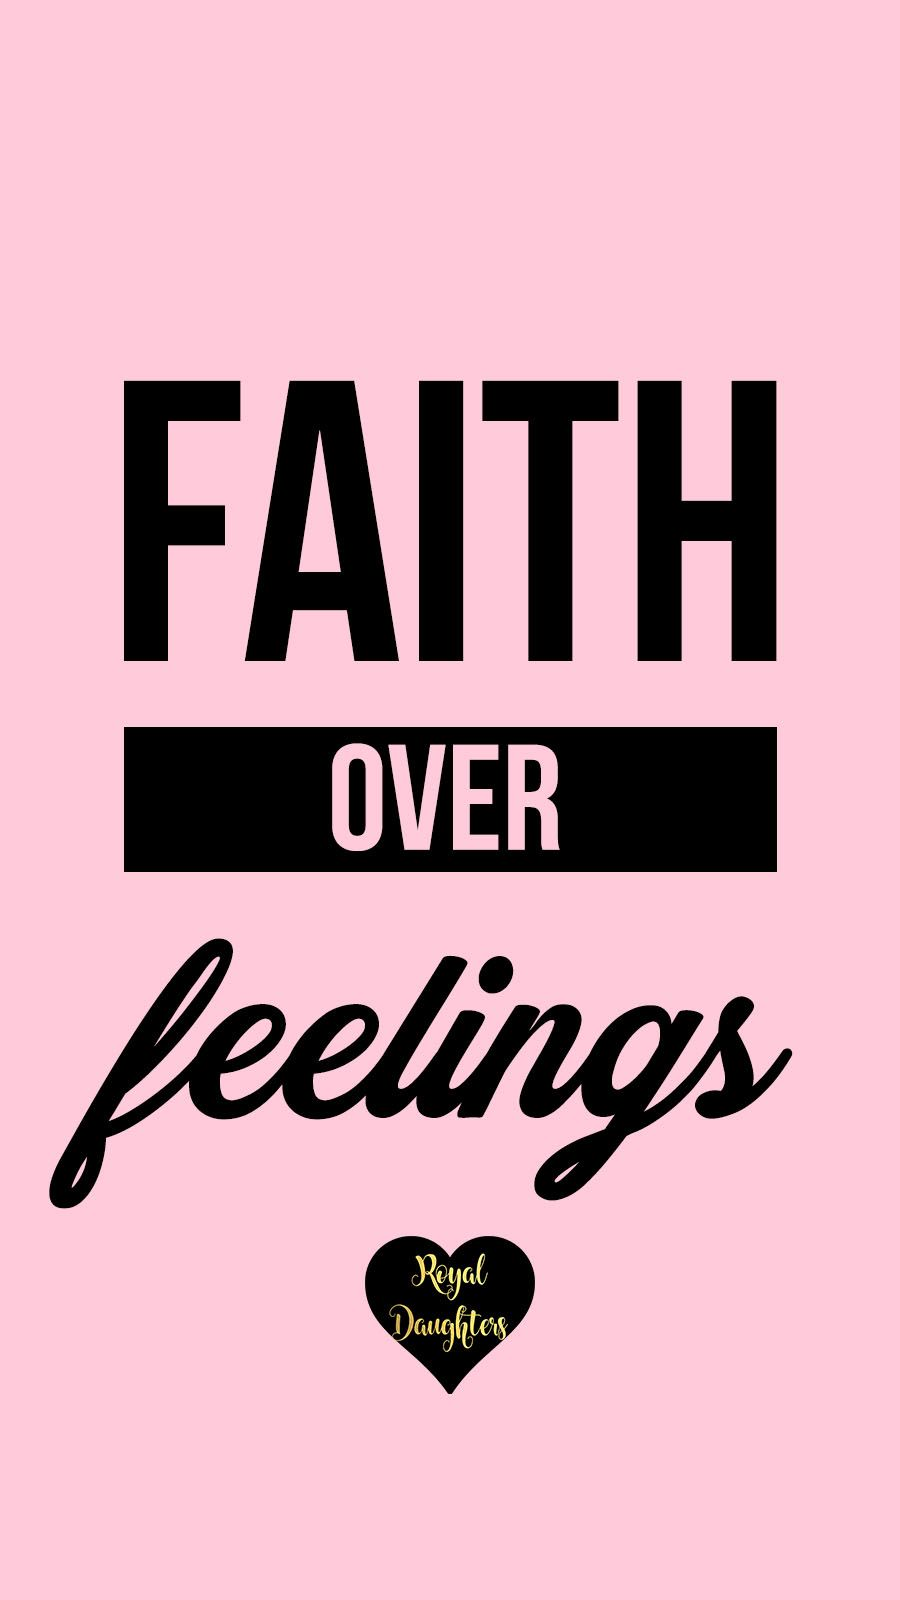 Inspirational Quote Phone Wallpaper Christian Lockscreen Girly Wallpaper For Iphone Faith Over F Iphone Wallpaper Quotes Girly Christian Quotes Bible Quotes